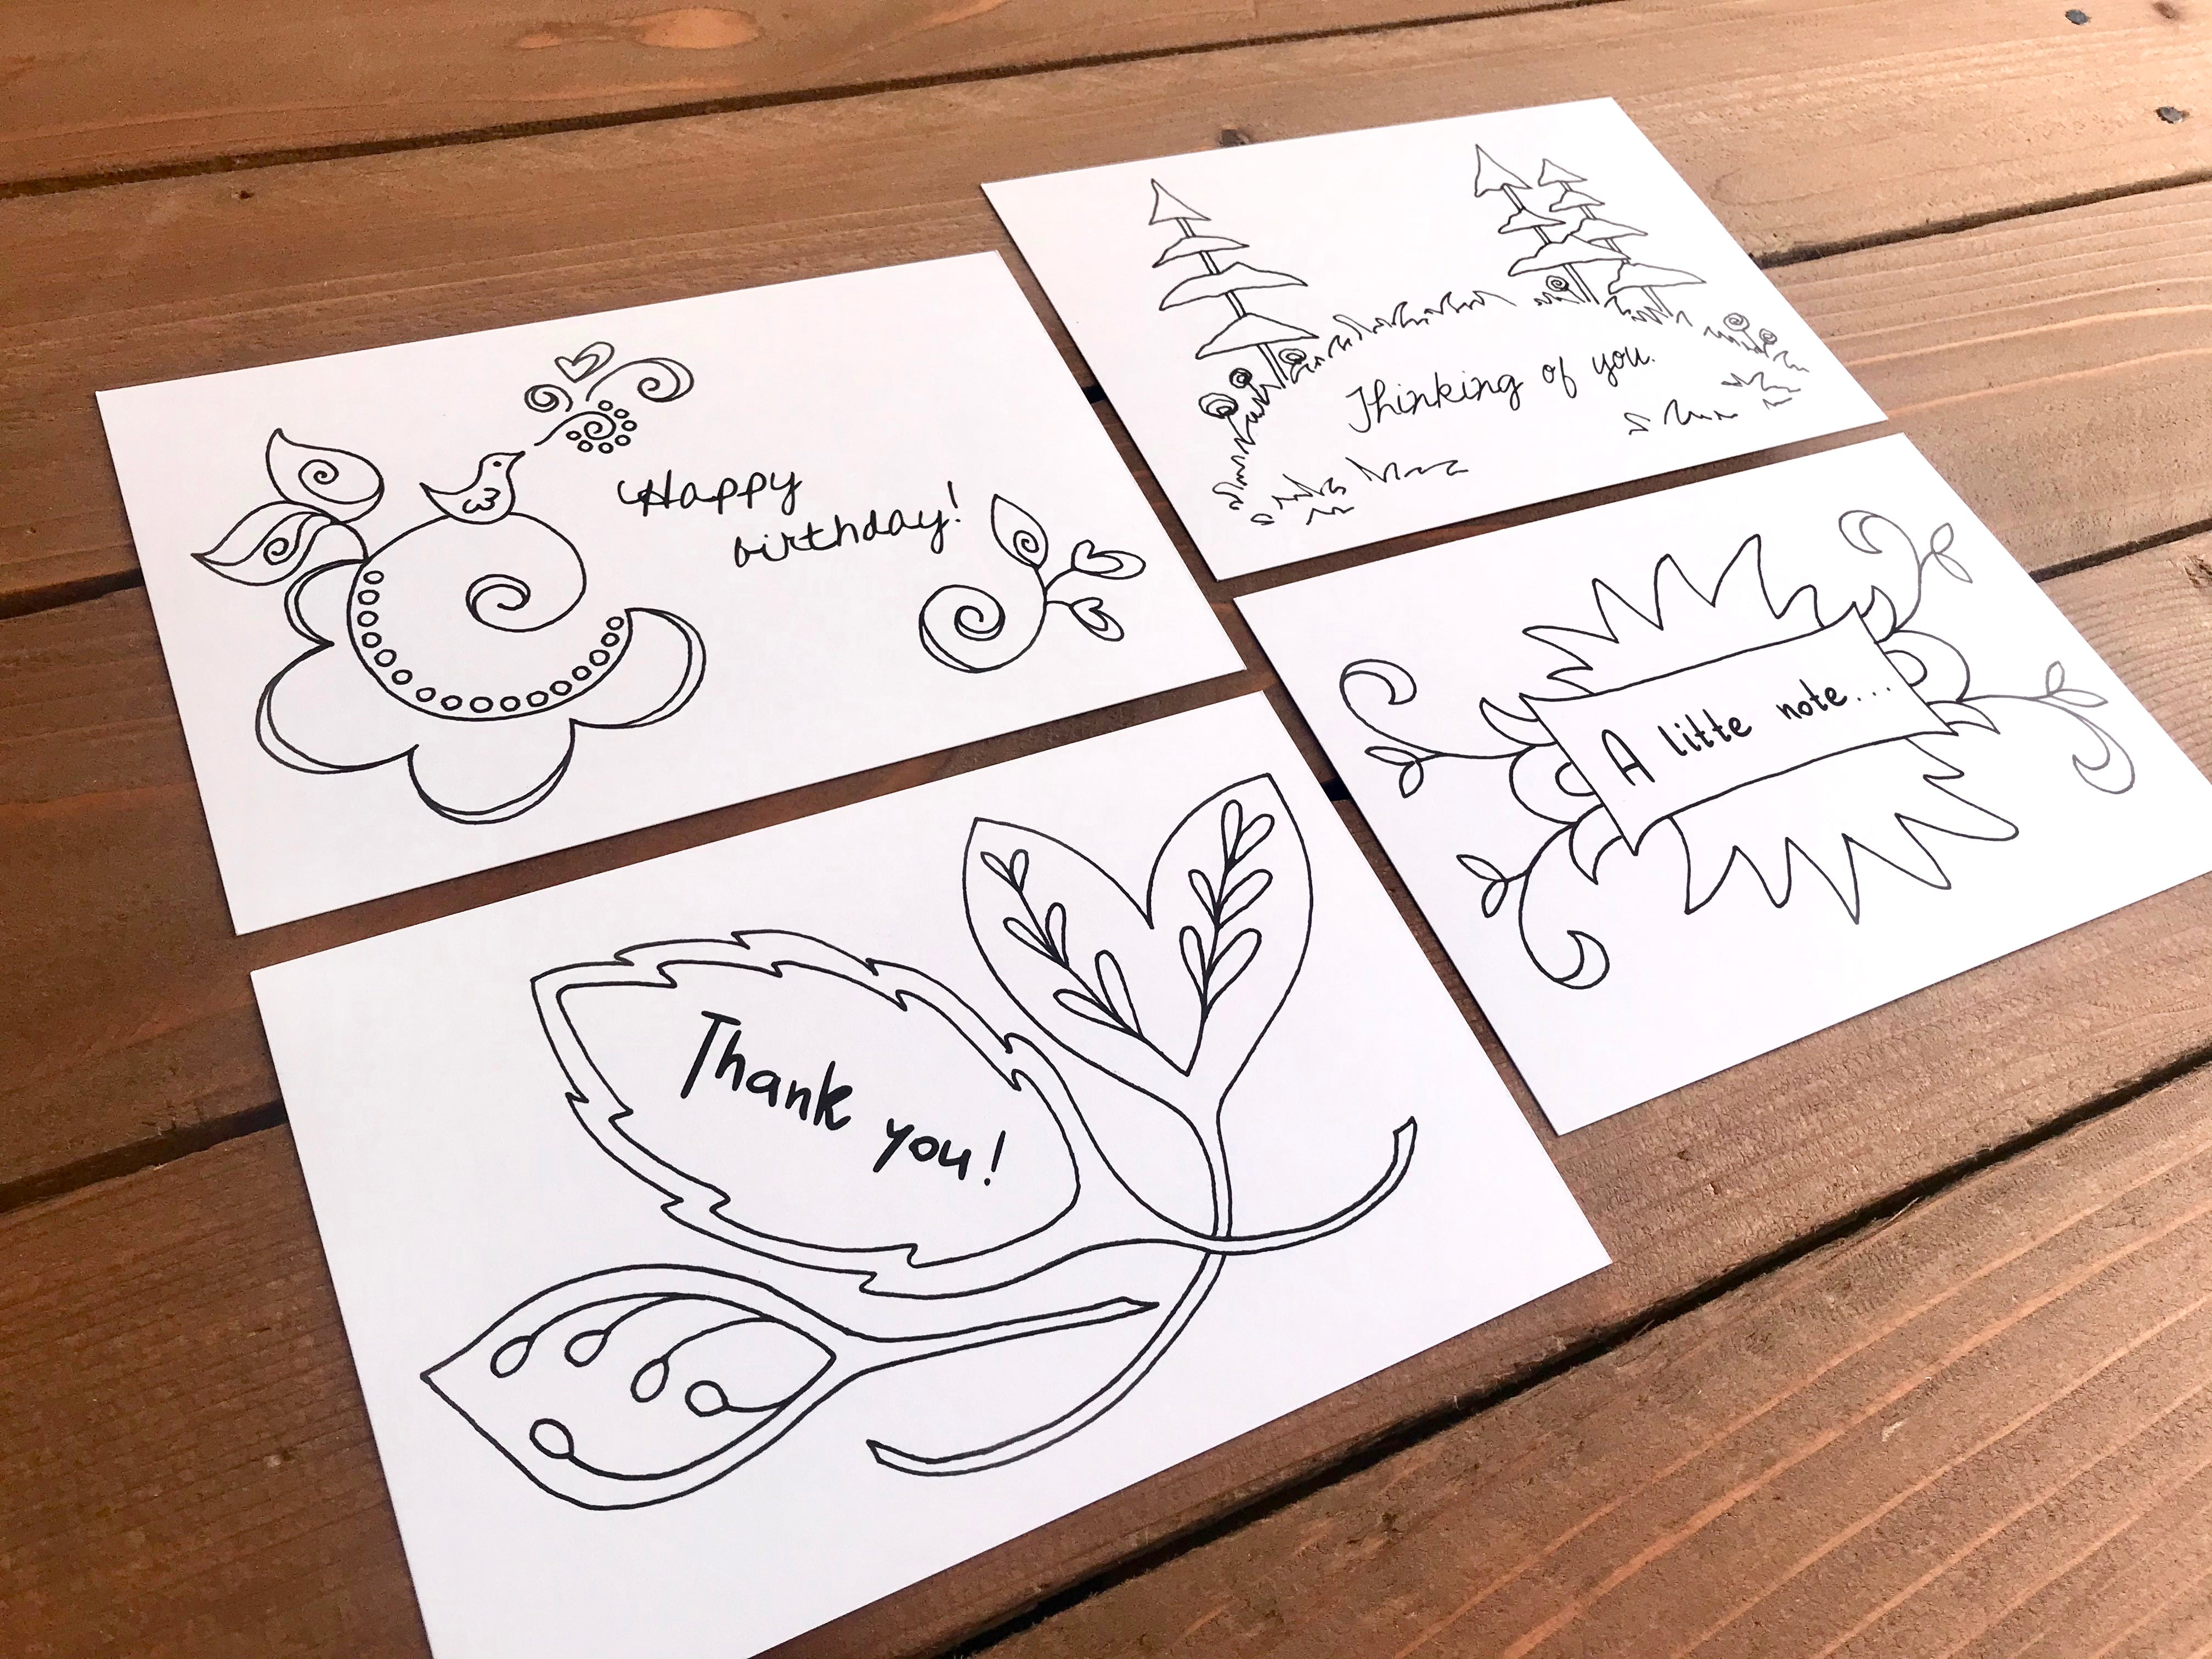 Color Your Own Postcards - Worded